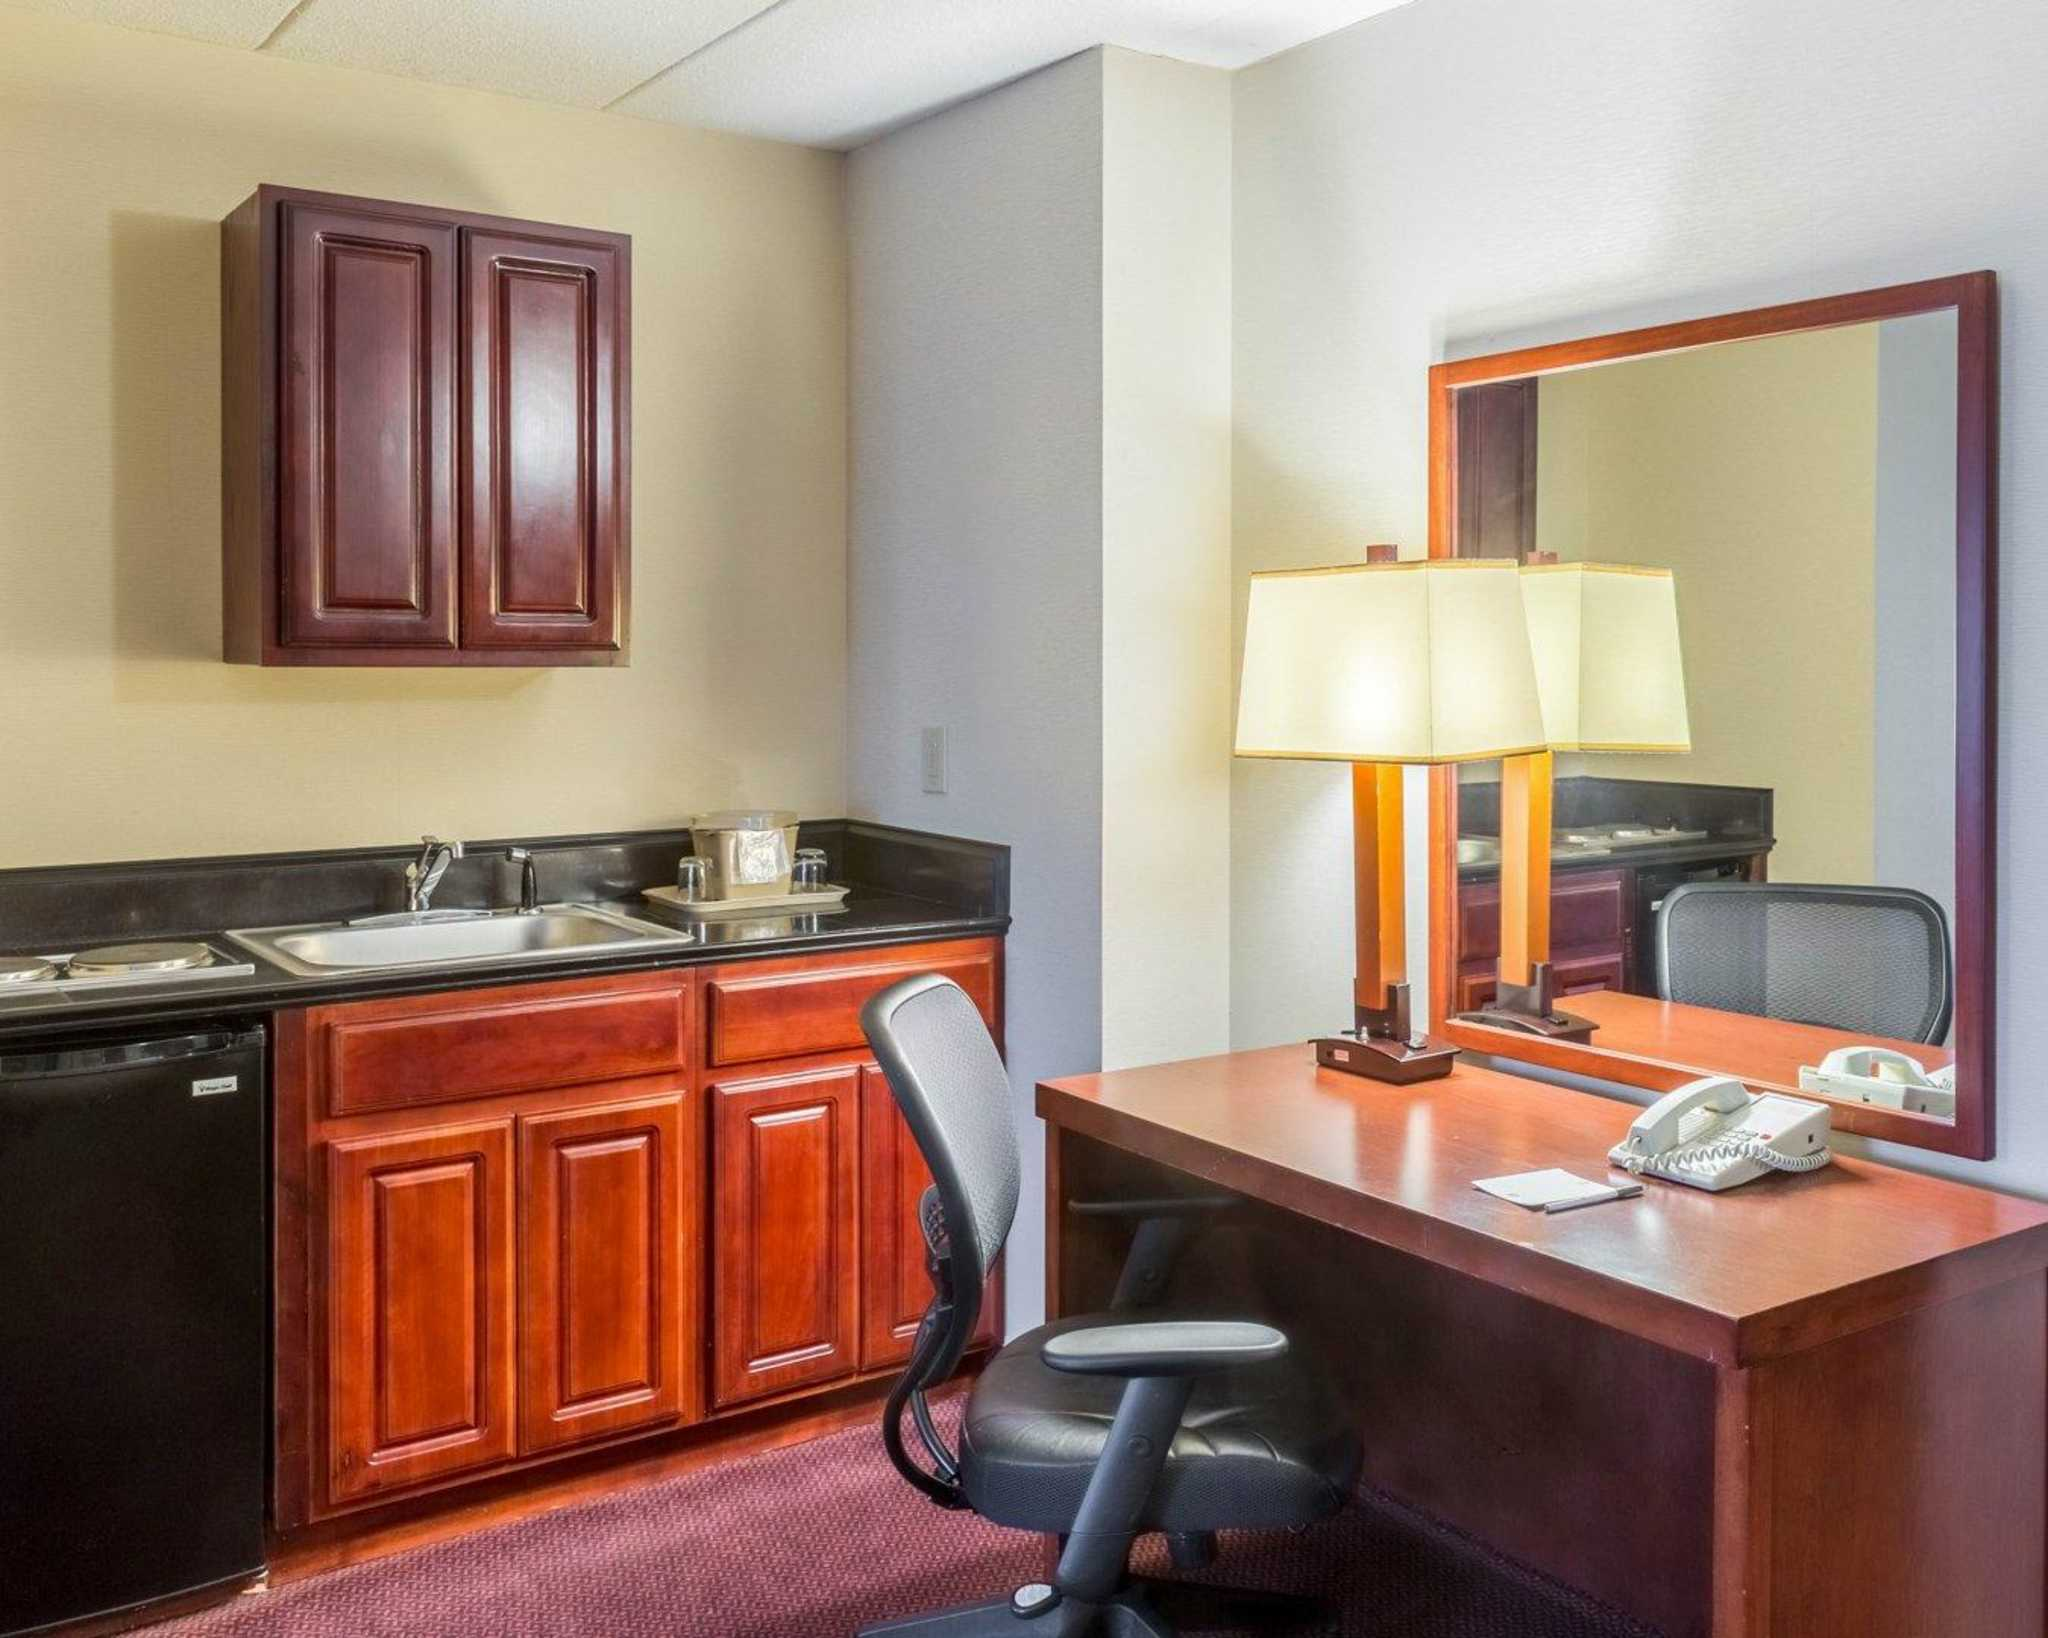 Clarion Hotel image 33